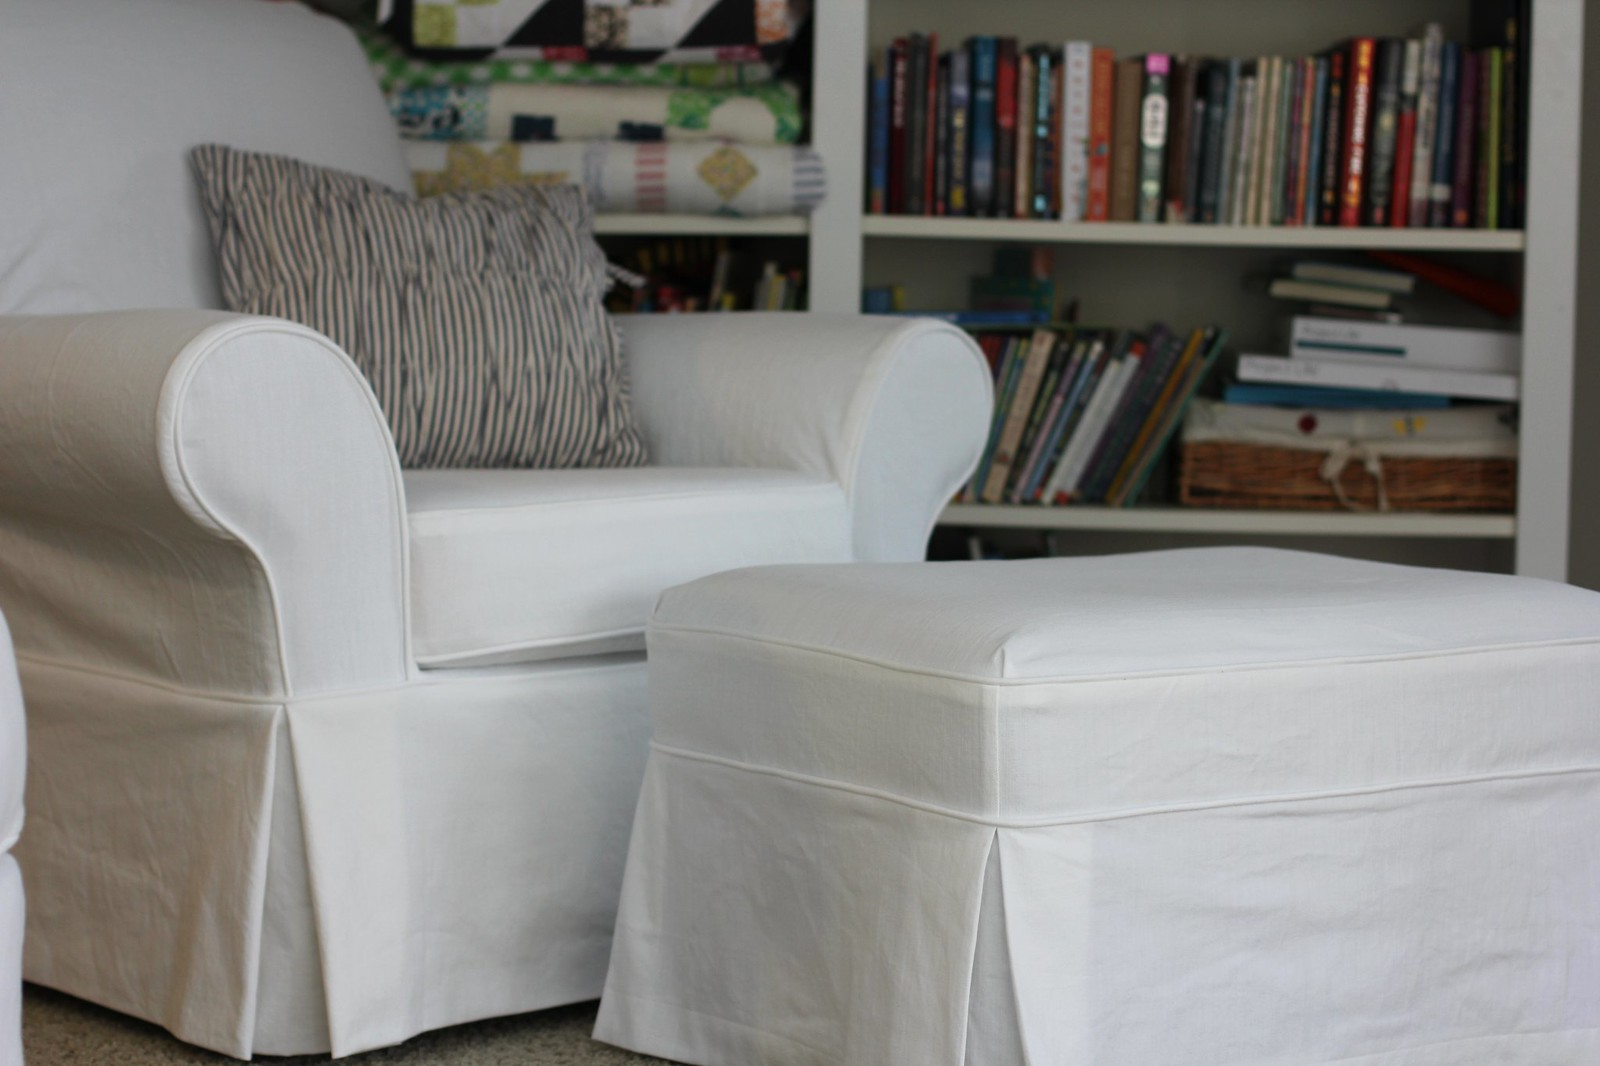 white slipcover chair and ottoman hon ignition 2 0 review twin fibers slipcovered